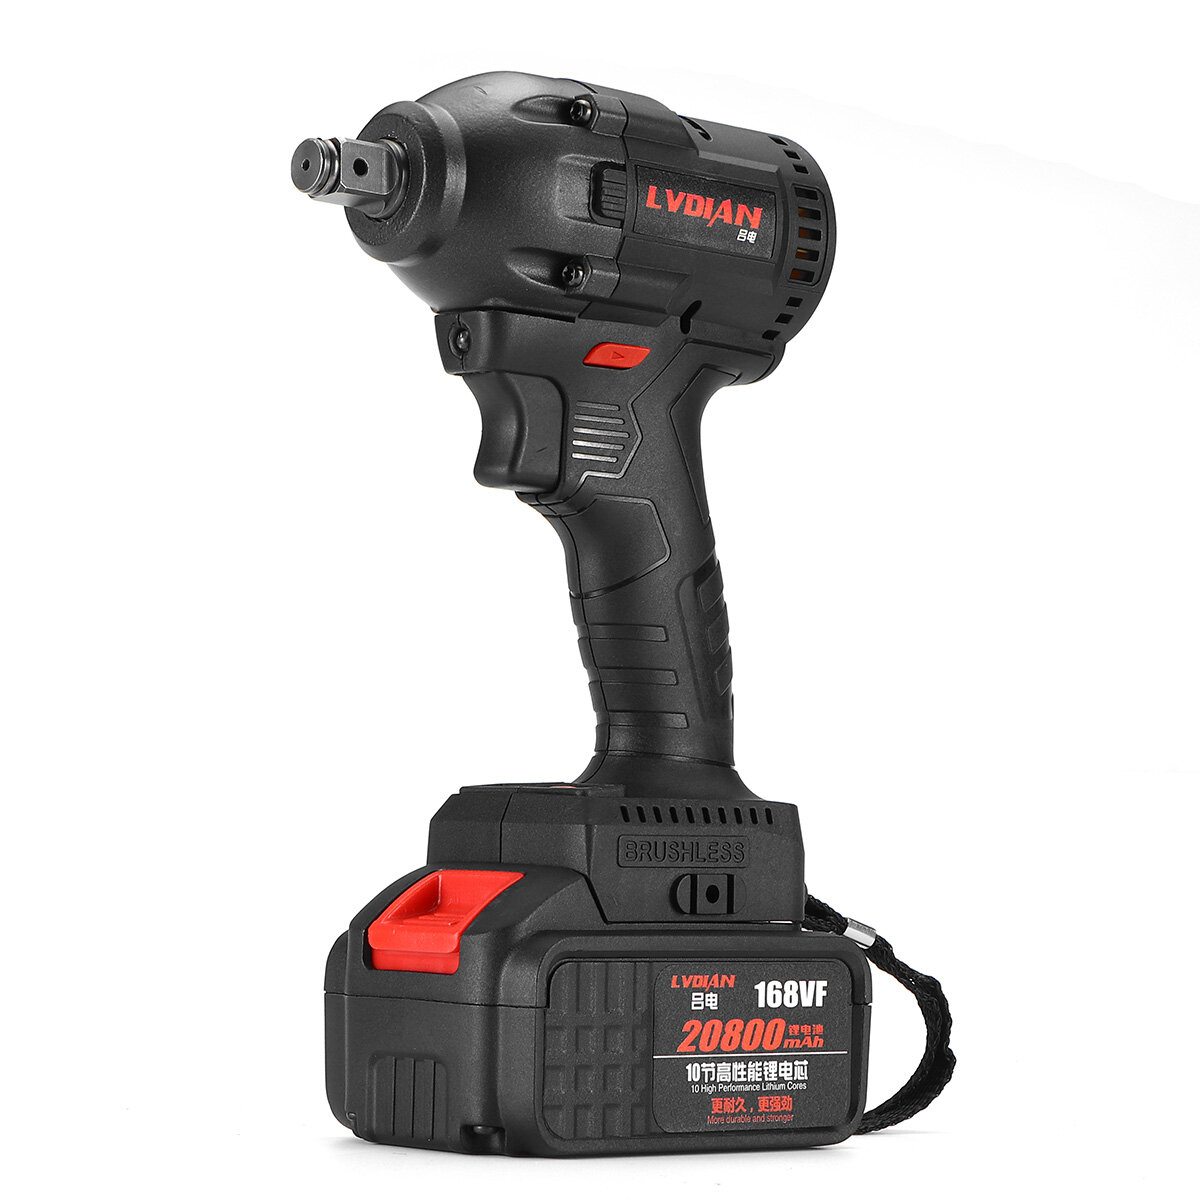 168VF 520N.m 20800mah Brushless Wrench Li-ion Battery Electric Wrench Cordless Waterproof Impact Wrench Kit